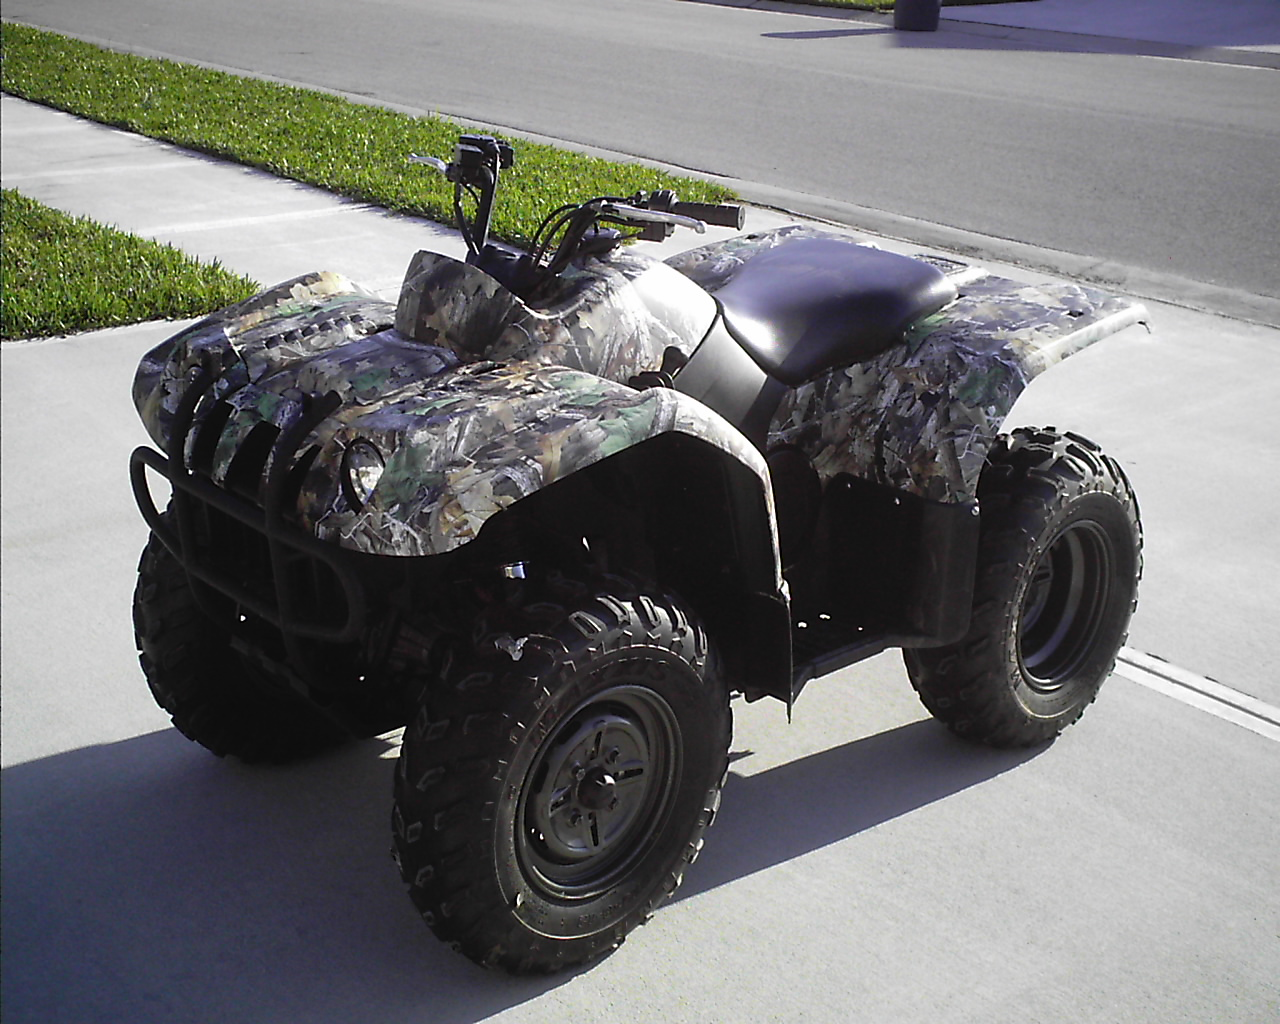 camouflage wraps hunting camo camouflage vehicle wraps camo covering wrap atv camo decals. Black Bedroom Furniture Sets. Home Design Ideas